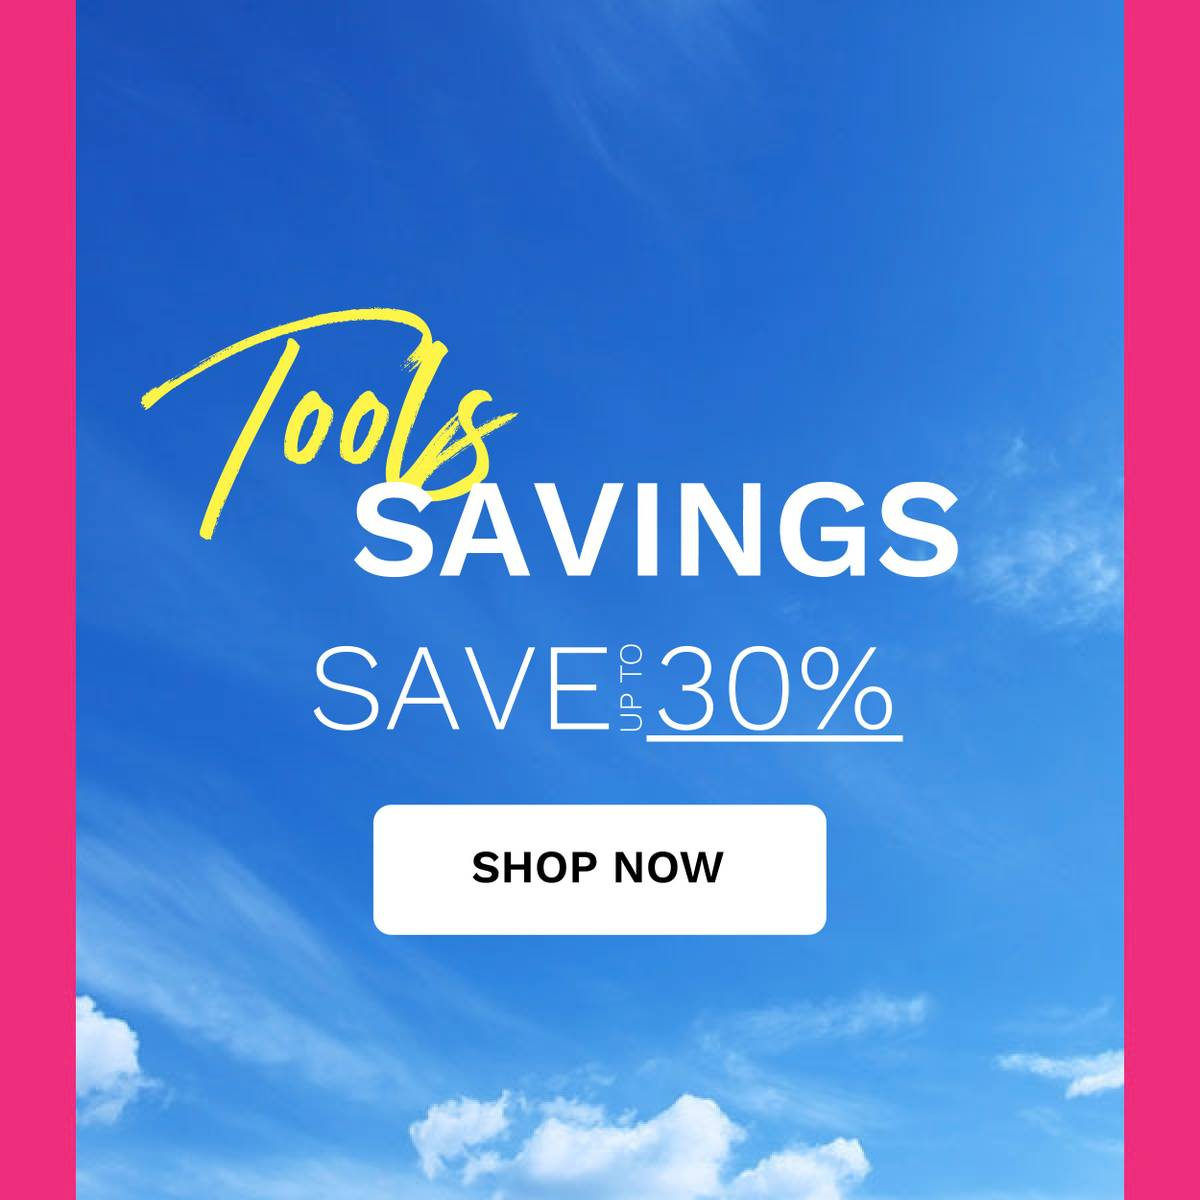 tools save up to 30%